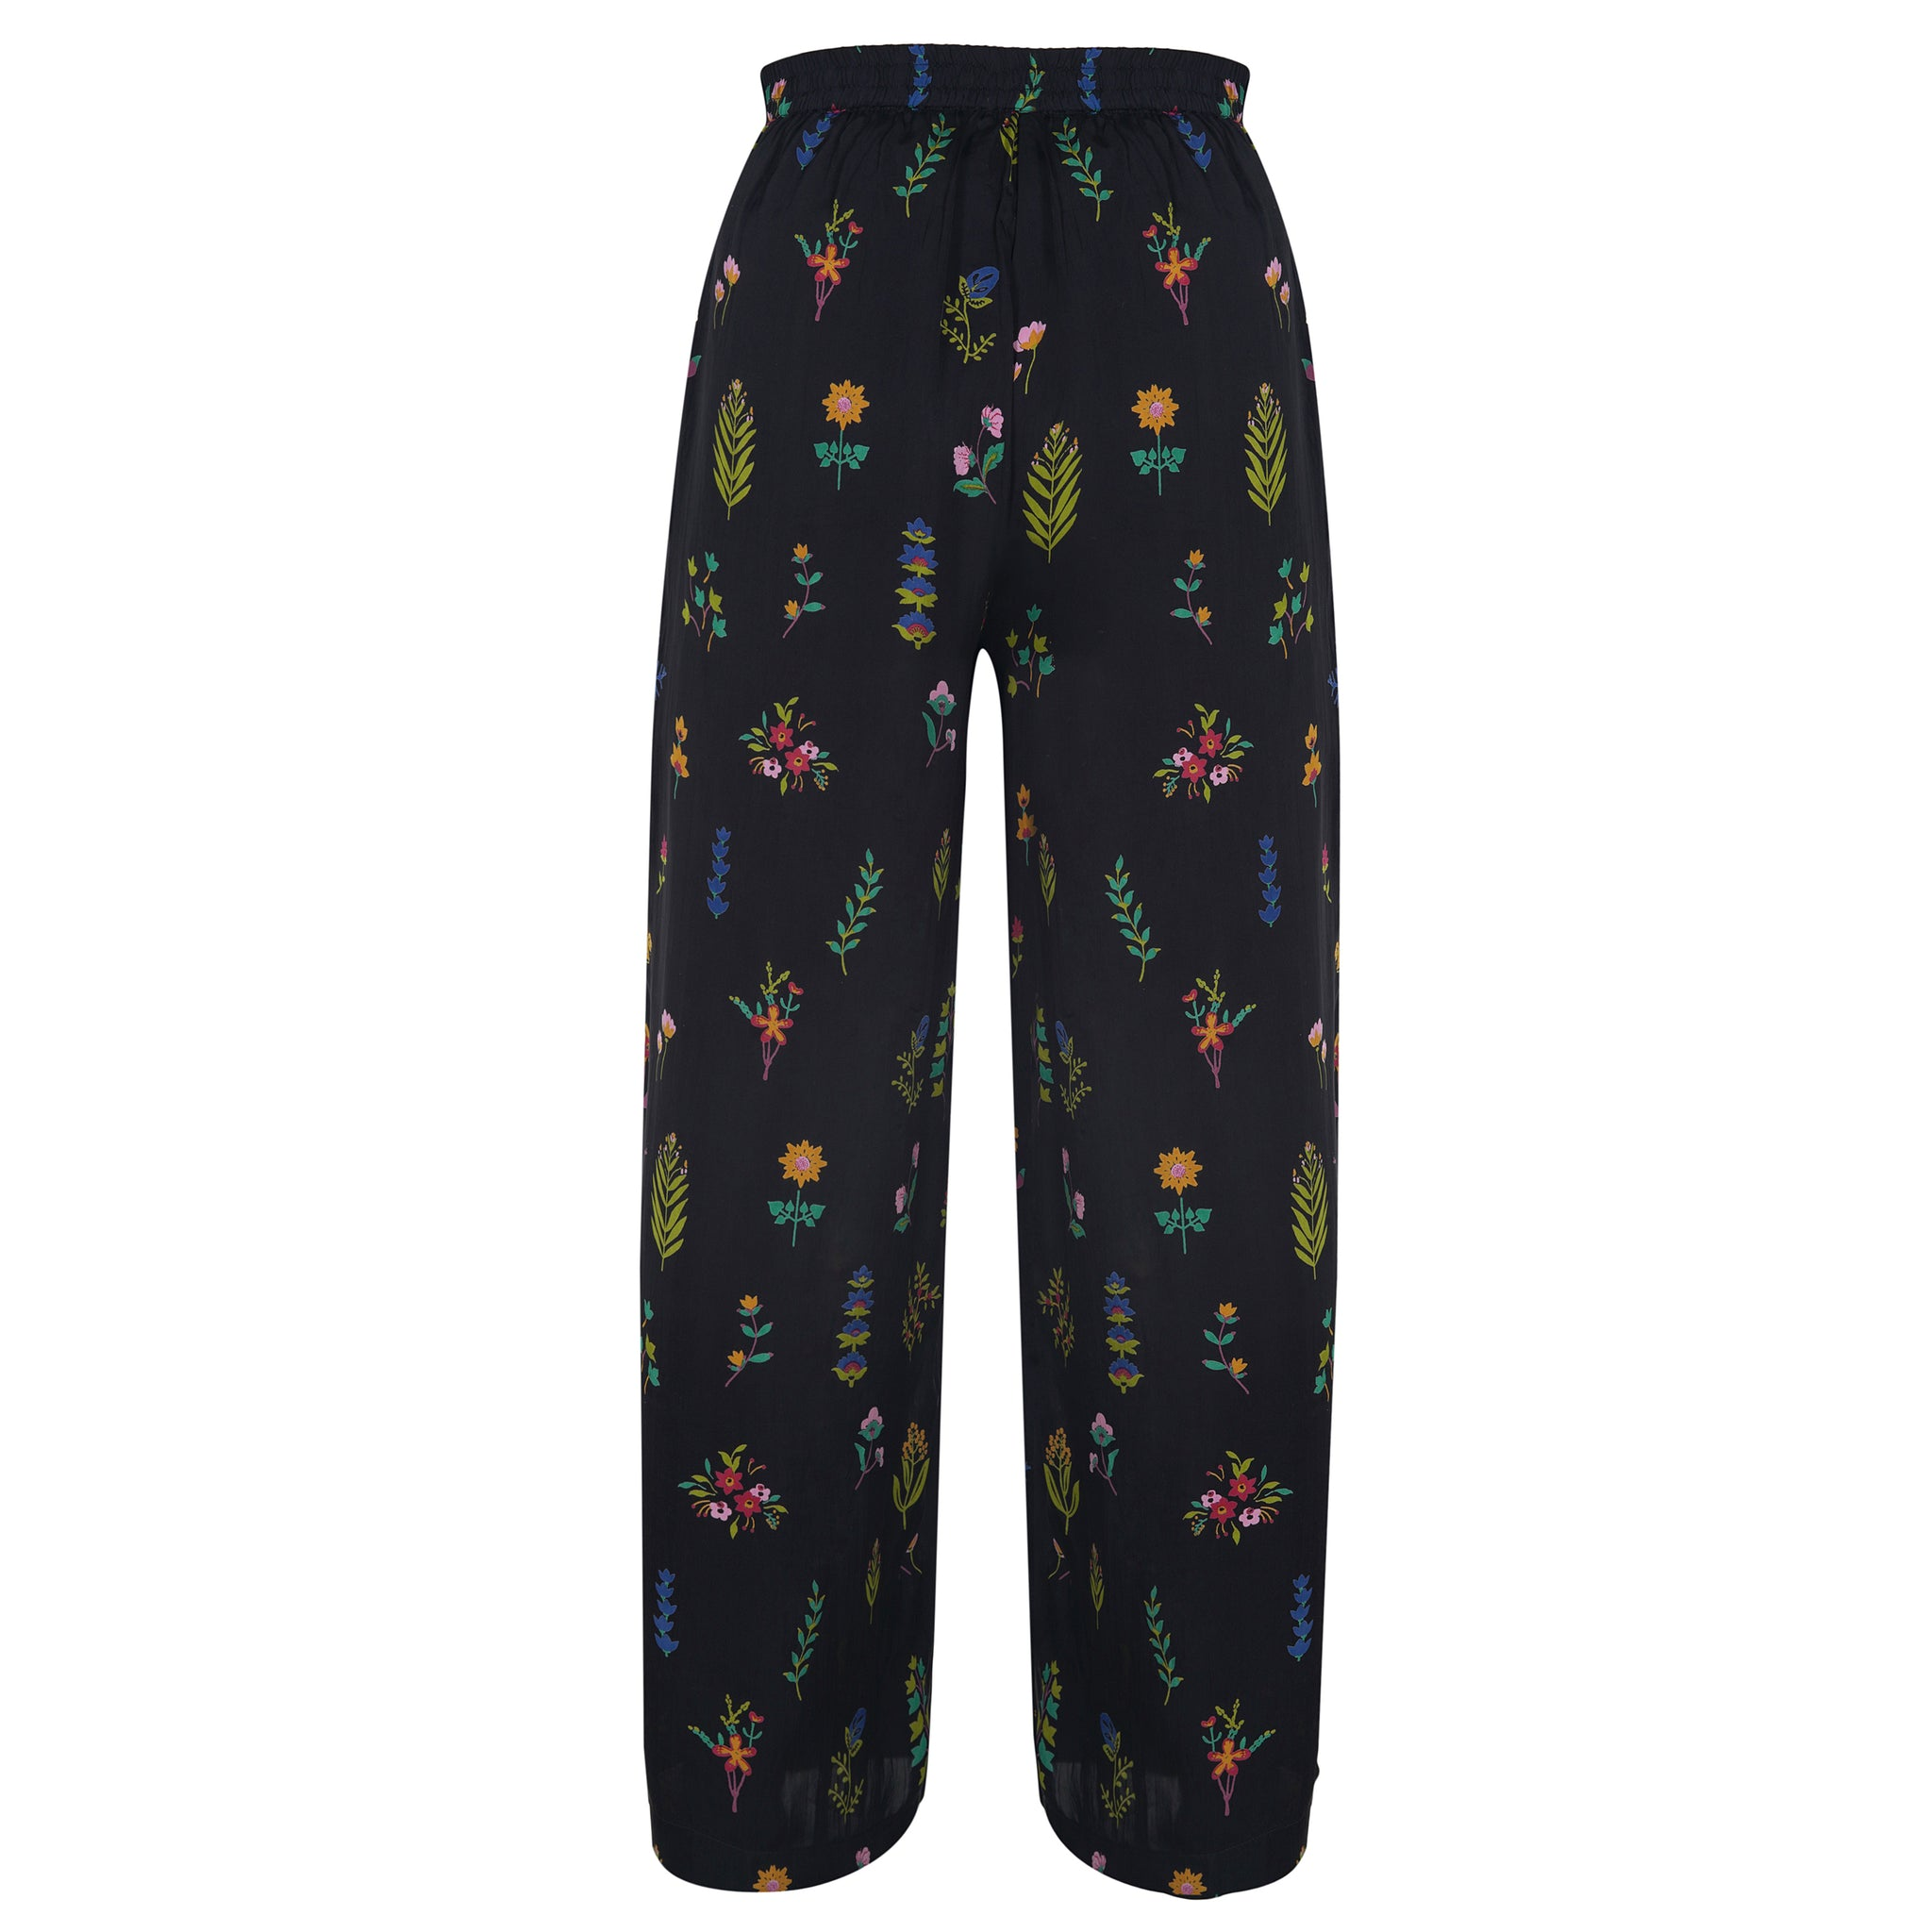 Midnight Botanica Pants